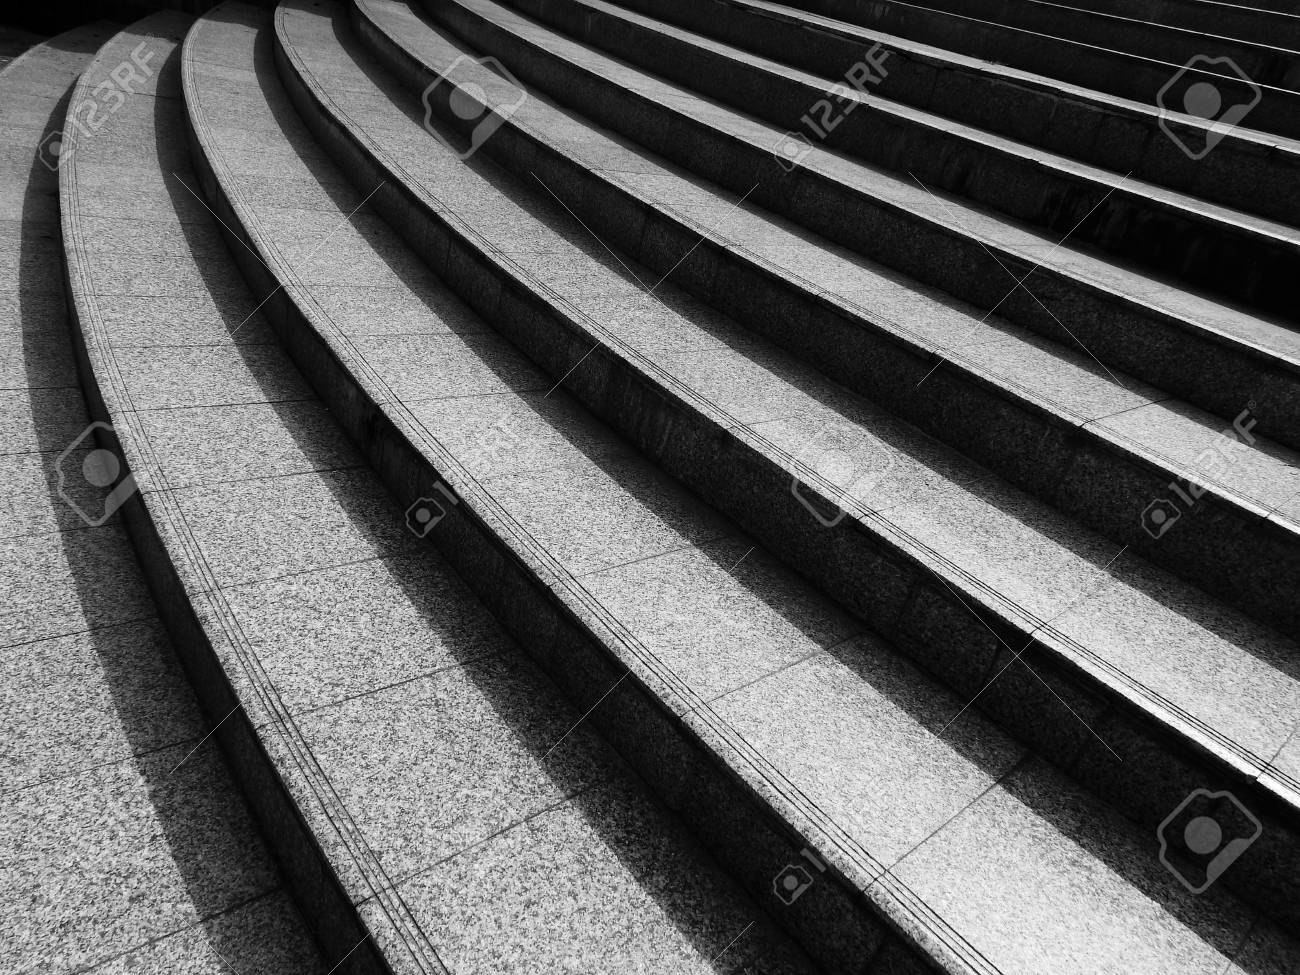 Granite Stone Staircase In Street Architecture Design Black Stock Photo Picture And Royalty Free Image Image 93650240